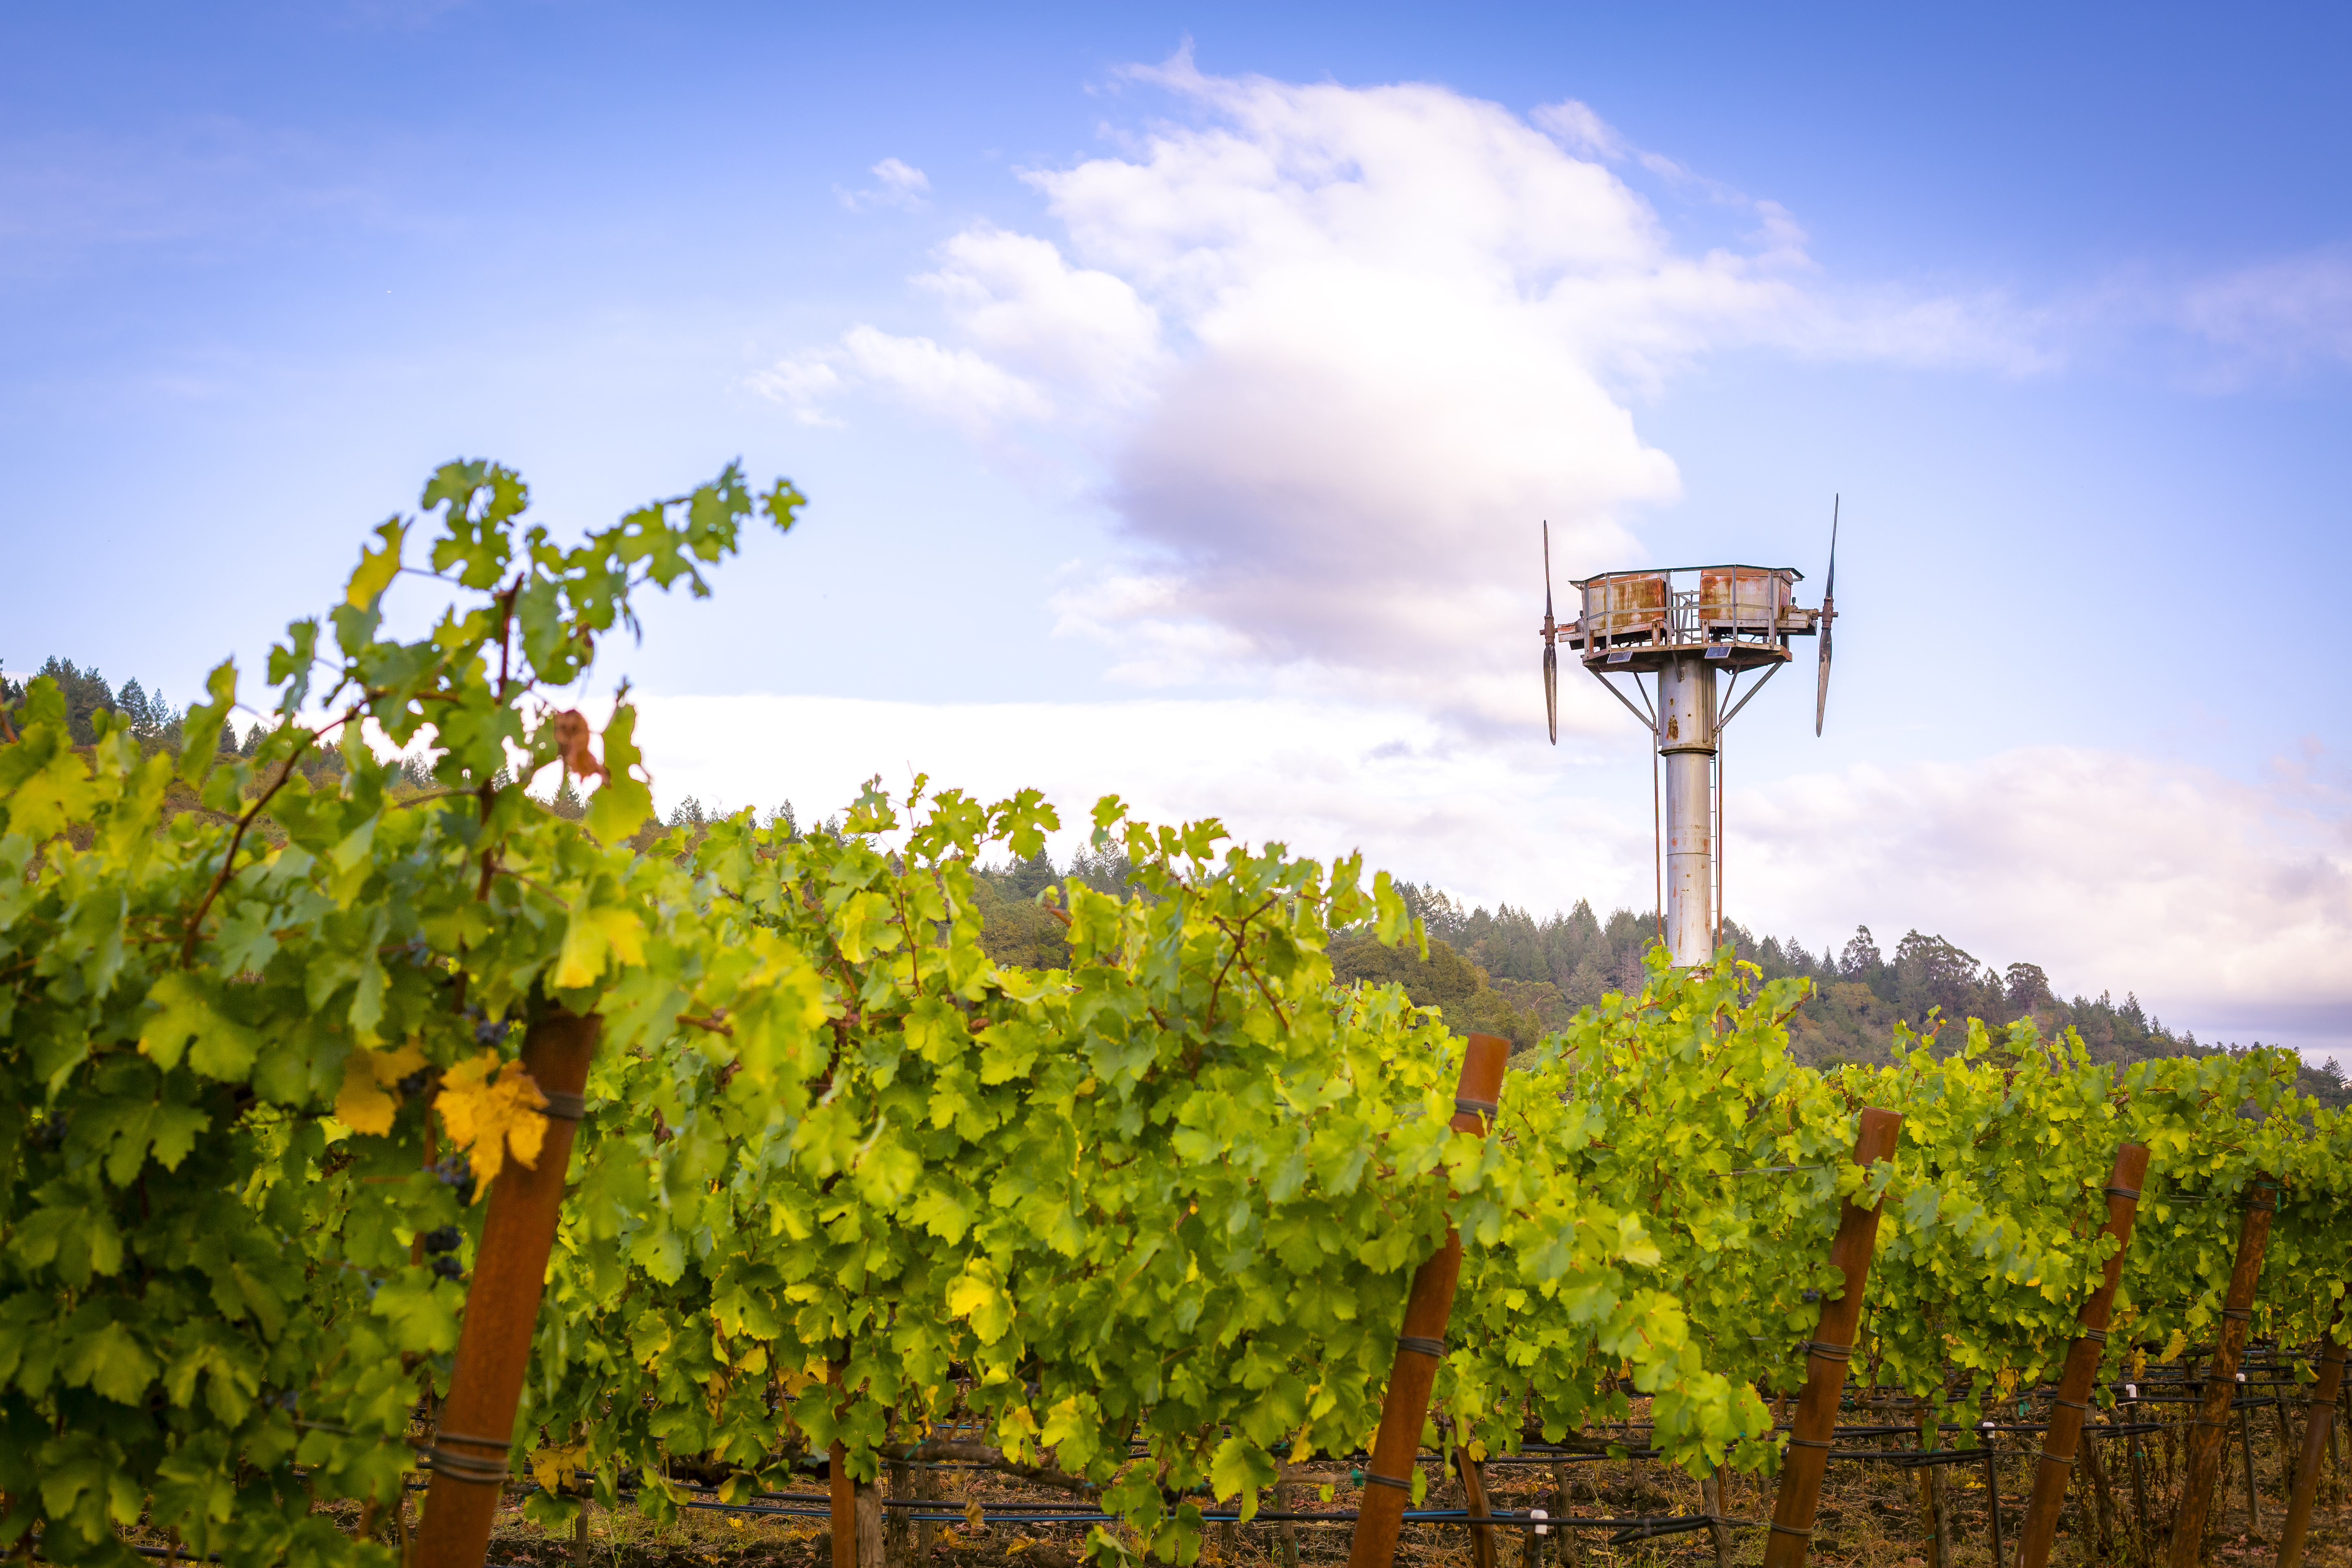 Vineyard and Sky, Napa Valley